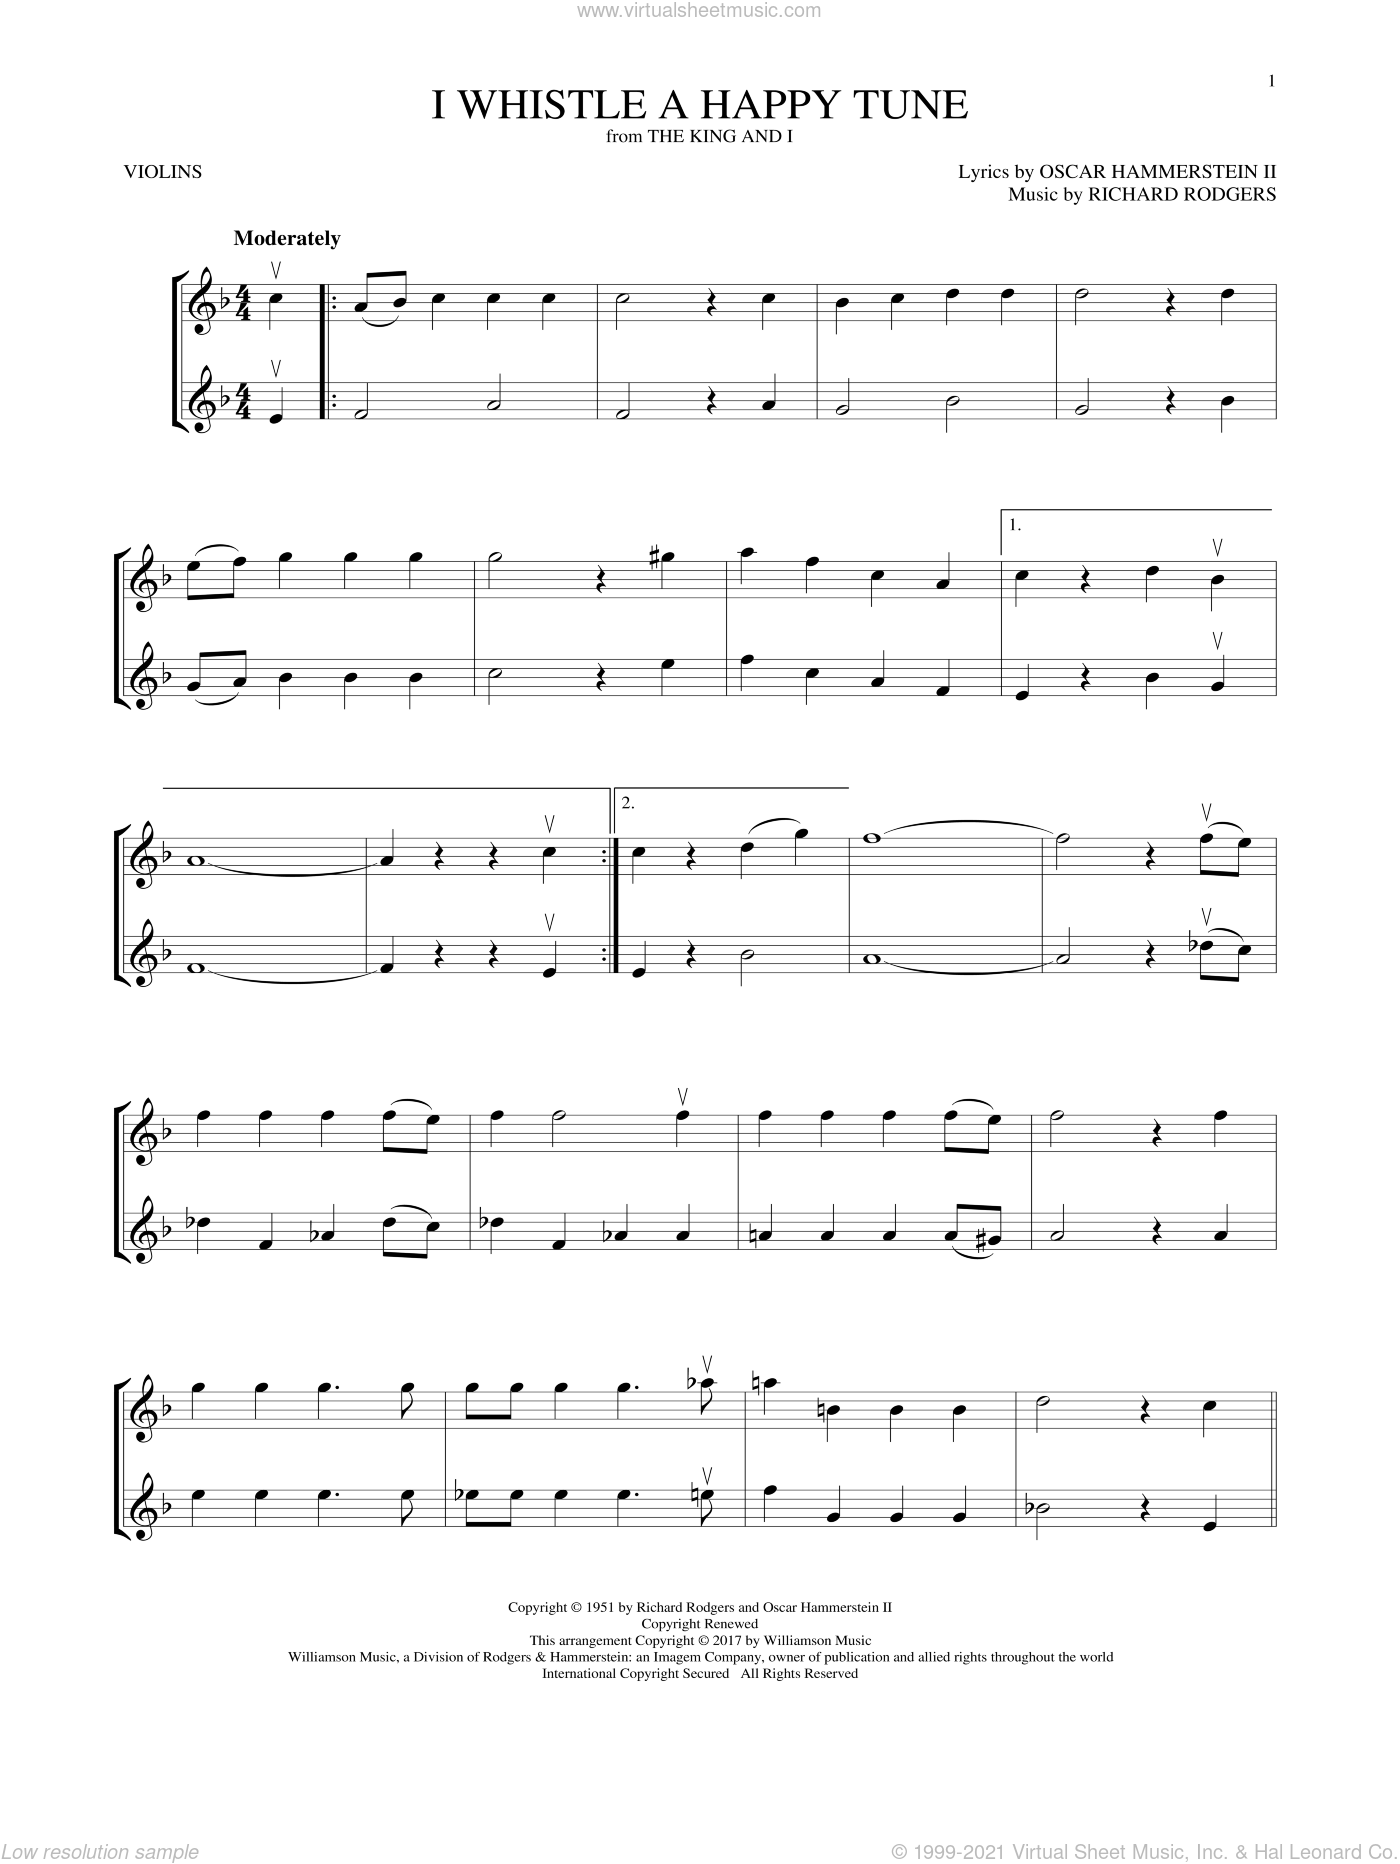 I Whistle A Happy Tune sheet music for two violins (duets, violin duets) by Richard Rodgers, Oscar II Hammerstein and Rodgers & Hammerstein, intermediate skill level